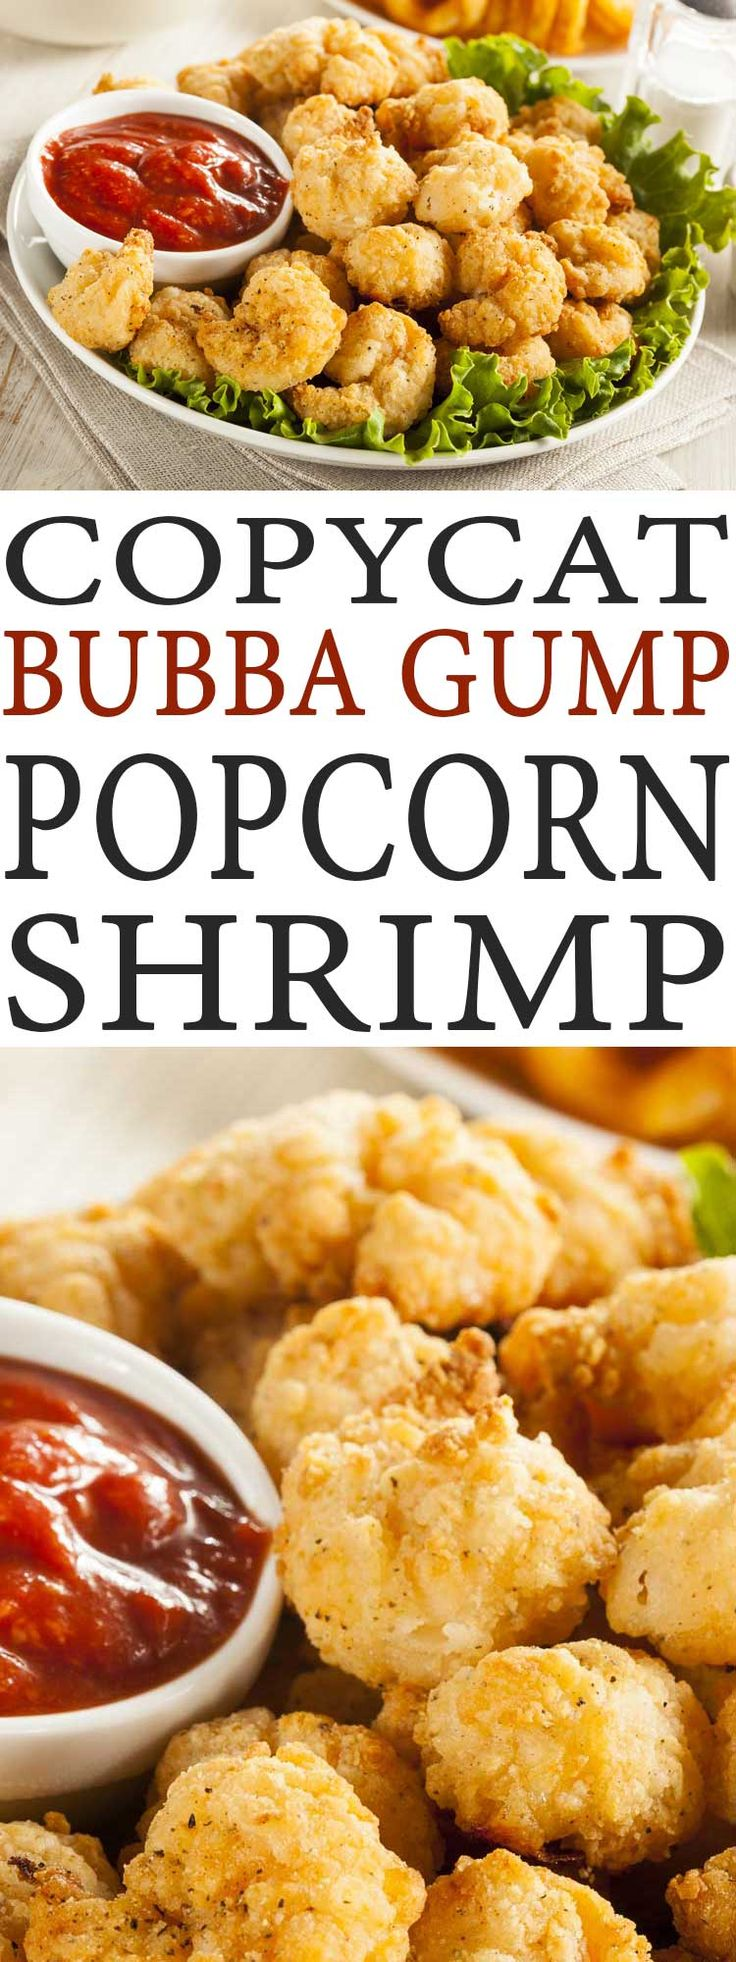 Love Bubba Gump's Popcorn Shrimp? You have to try this Copycat Bubba Gump Popcorn Shrimp recipe. It is a perfect appetizer recipes.